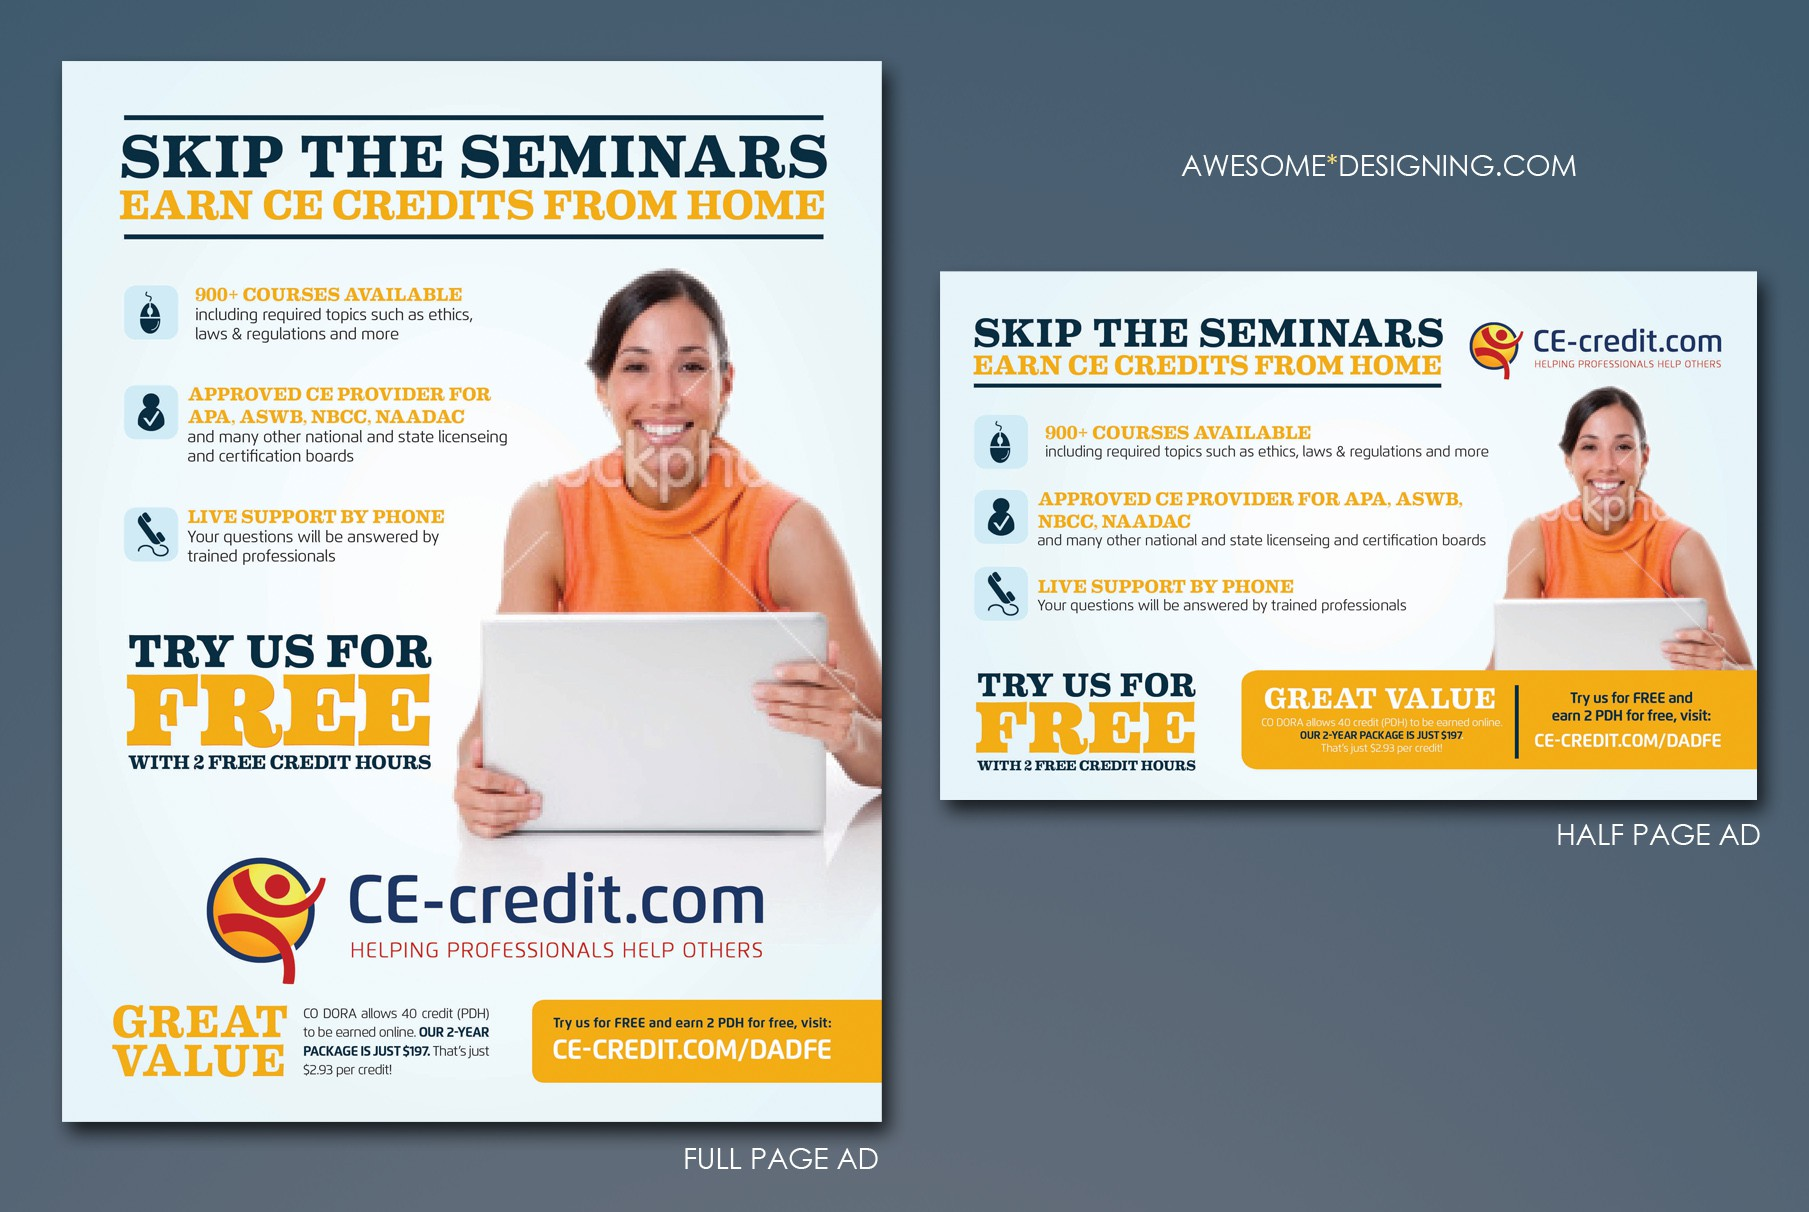 Create a unique one page and half page advertisement for CE-credit.com.